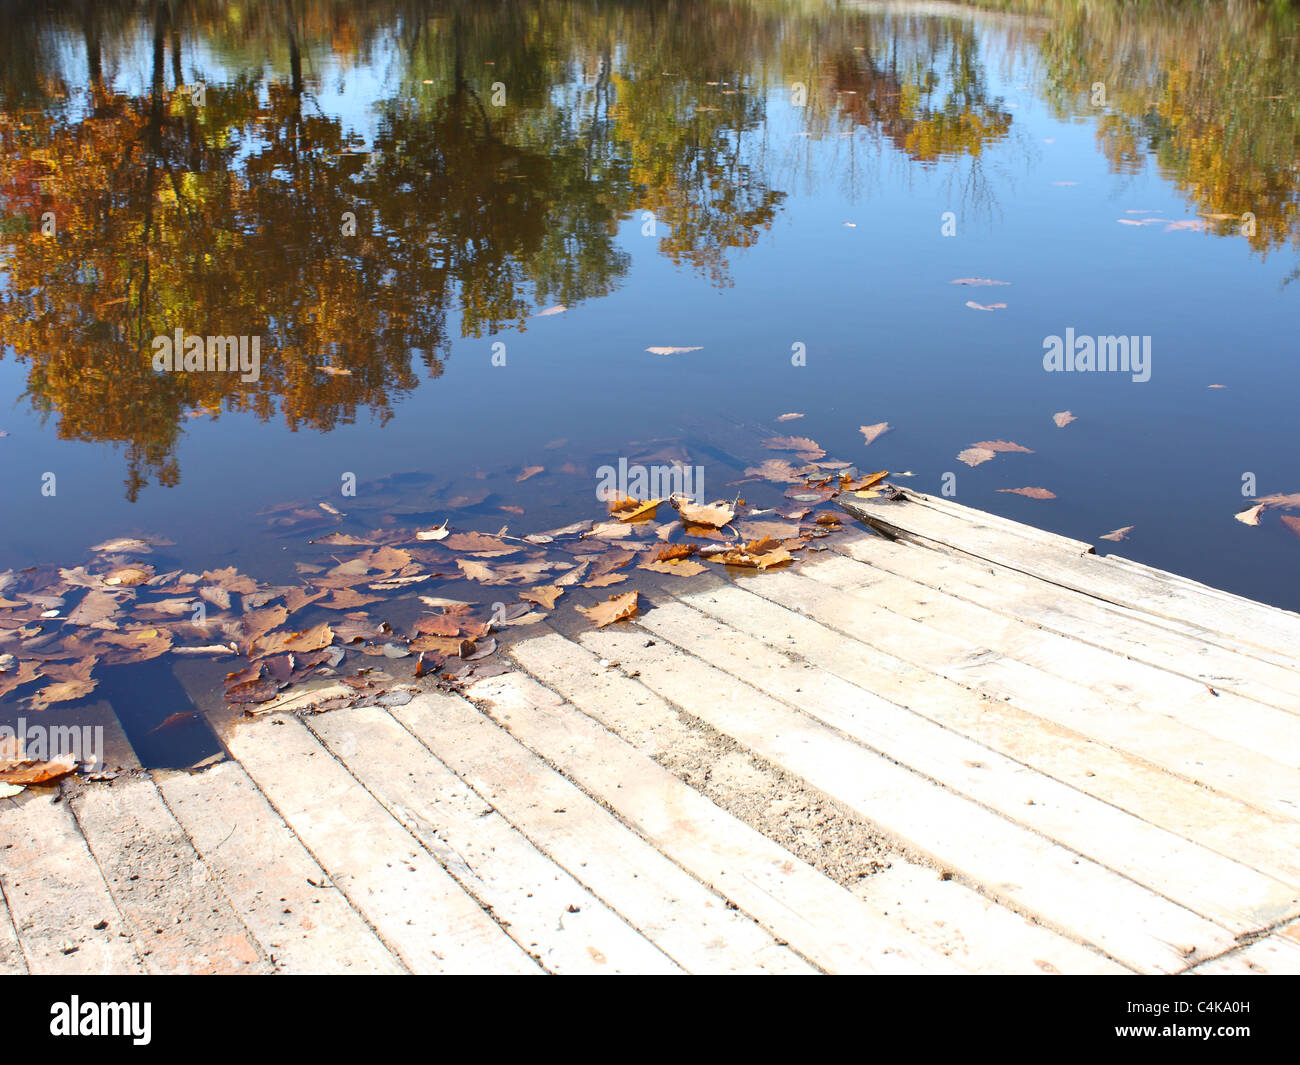 Coast of lake in the mellow autumn with leaves swimming in water. - Stock Image